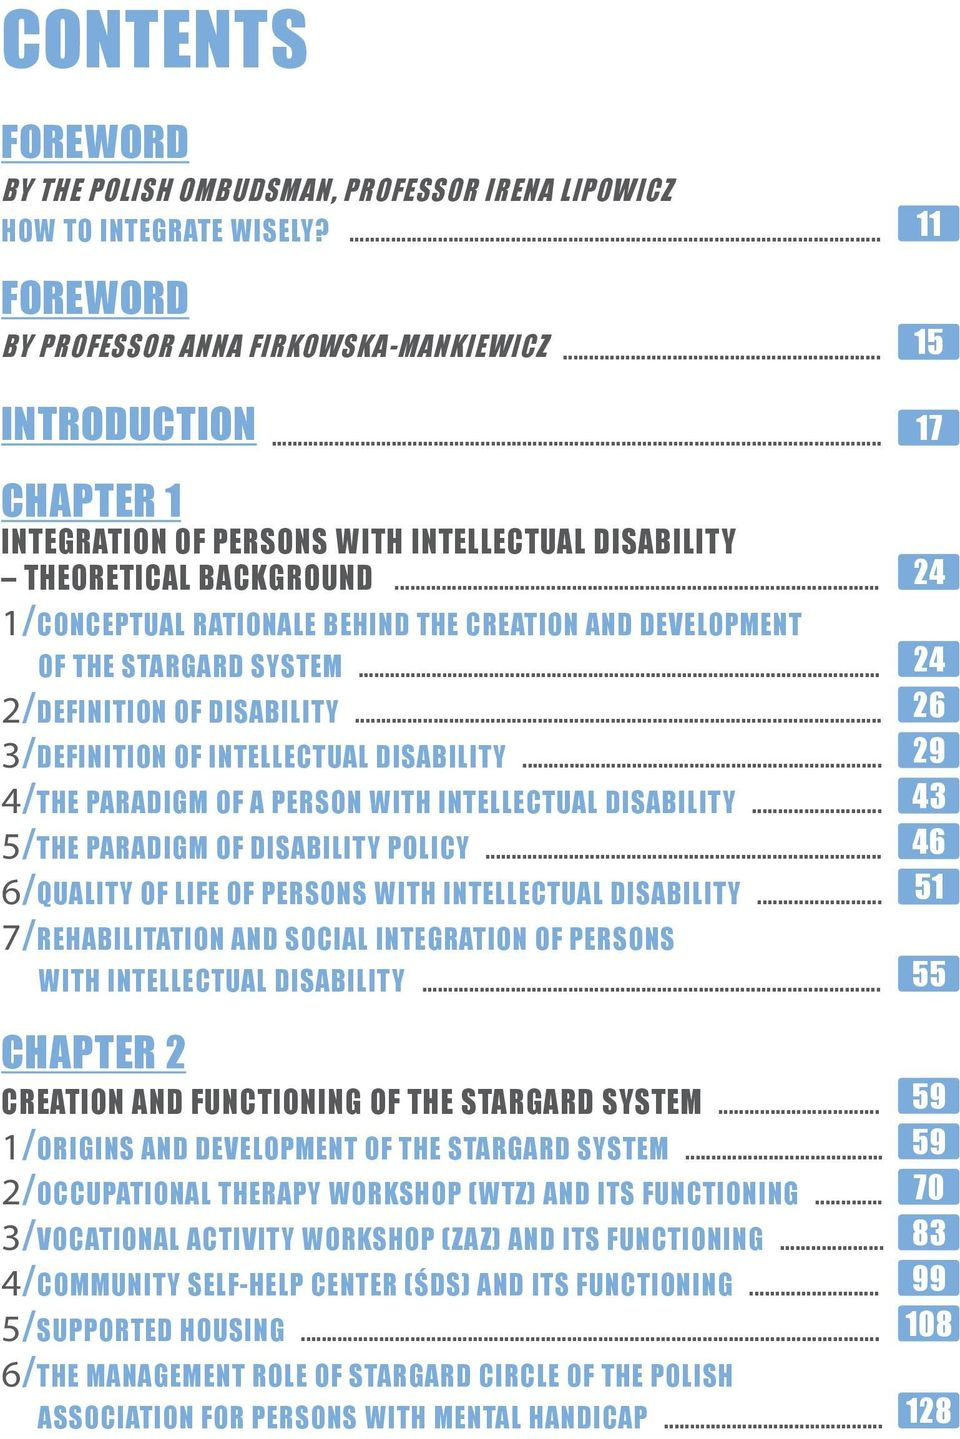 .. 2/DEFINITION OF DISABILITY... 3/DEFINITION OF INTELLECTUAL DISABILITY... 4/THE PARADIGM OF A PERSON WITH INTELLECTUAL DISABILITY... 5/THE PARADIGM OF DISABILITY POLICY.